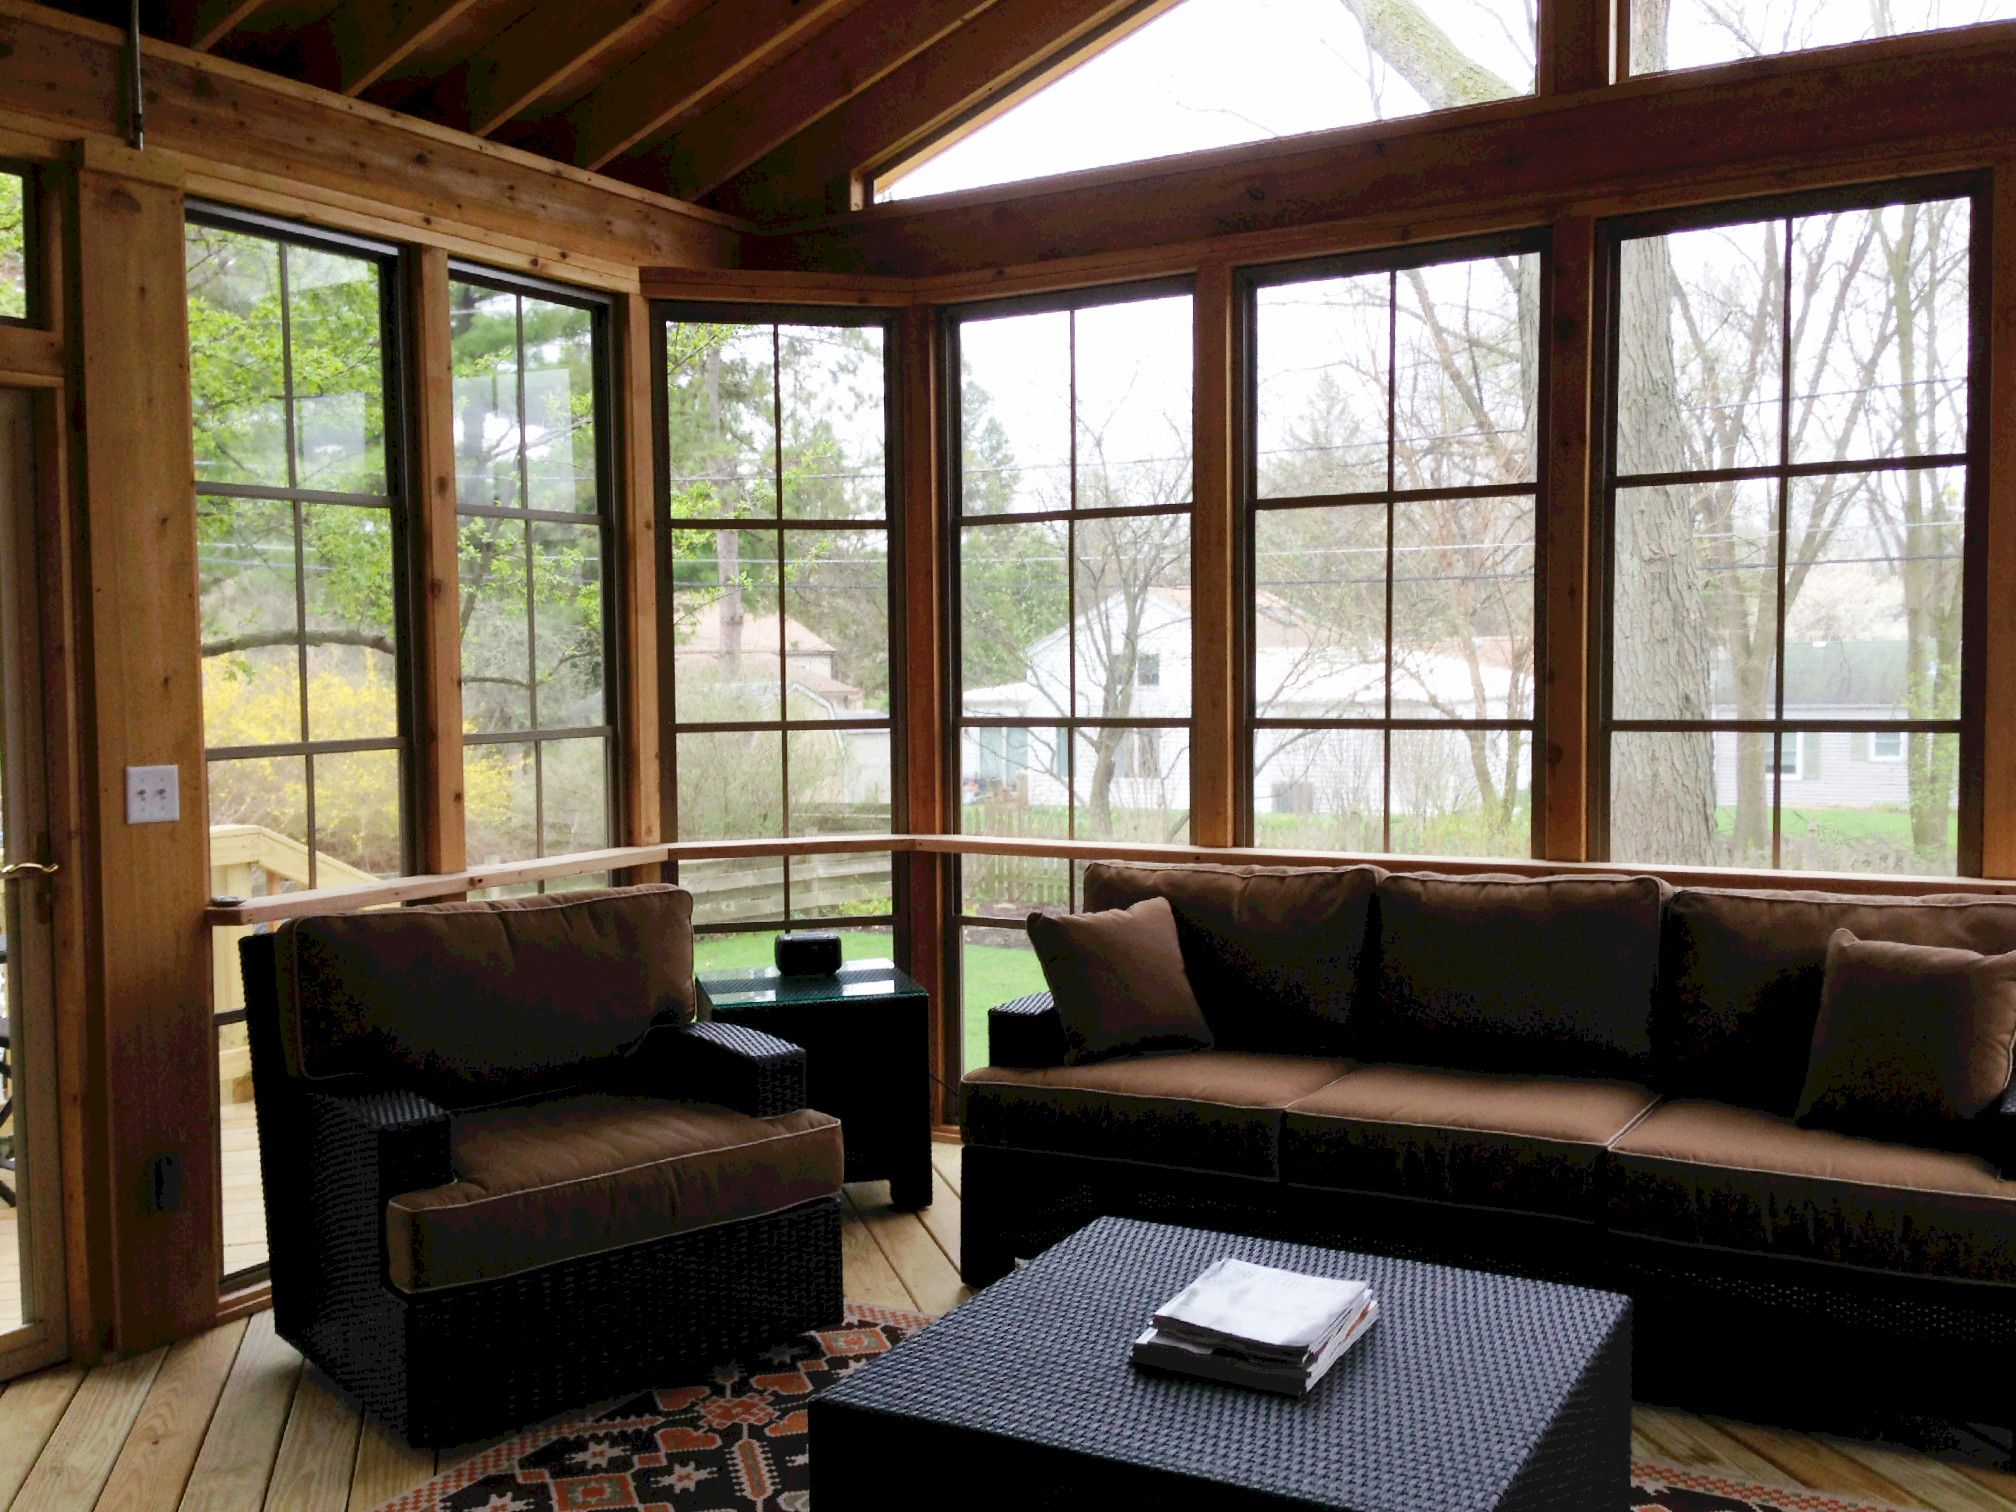 What Is Eze Breeze Raleigh Screen Porch 3 Season Room Builder Screen Room With Eze-breeze Windows By Wheaton, Il Porch